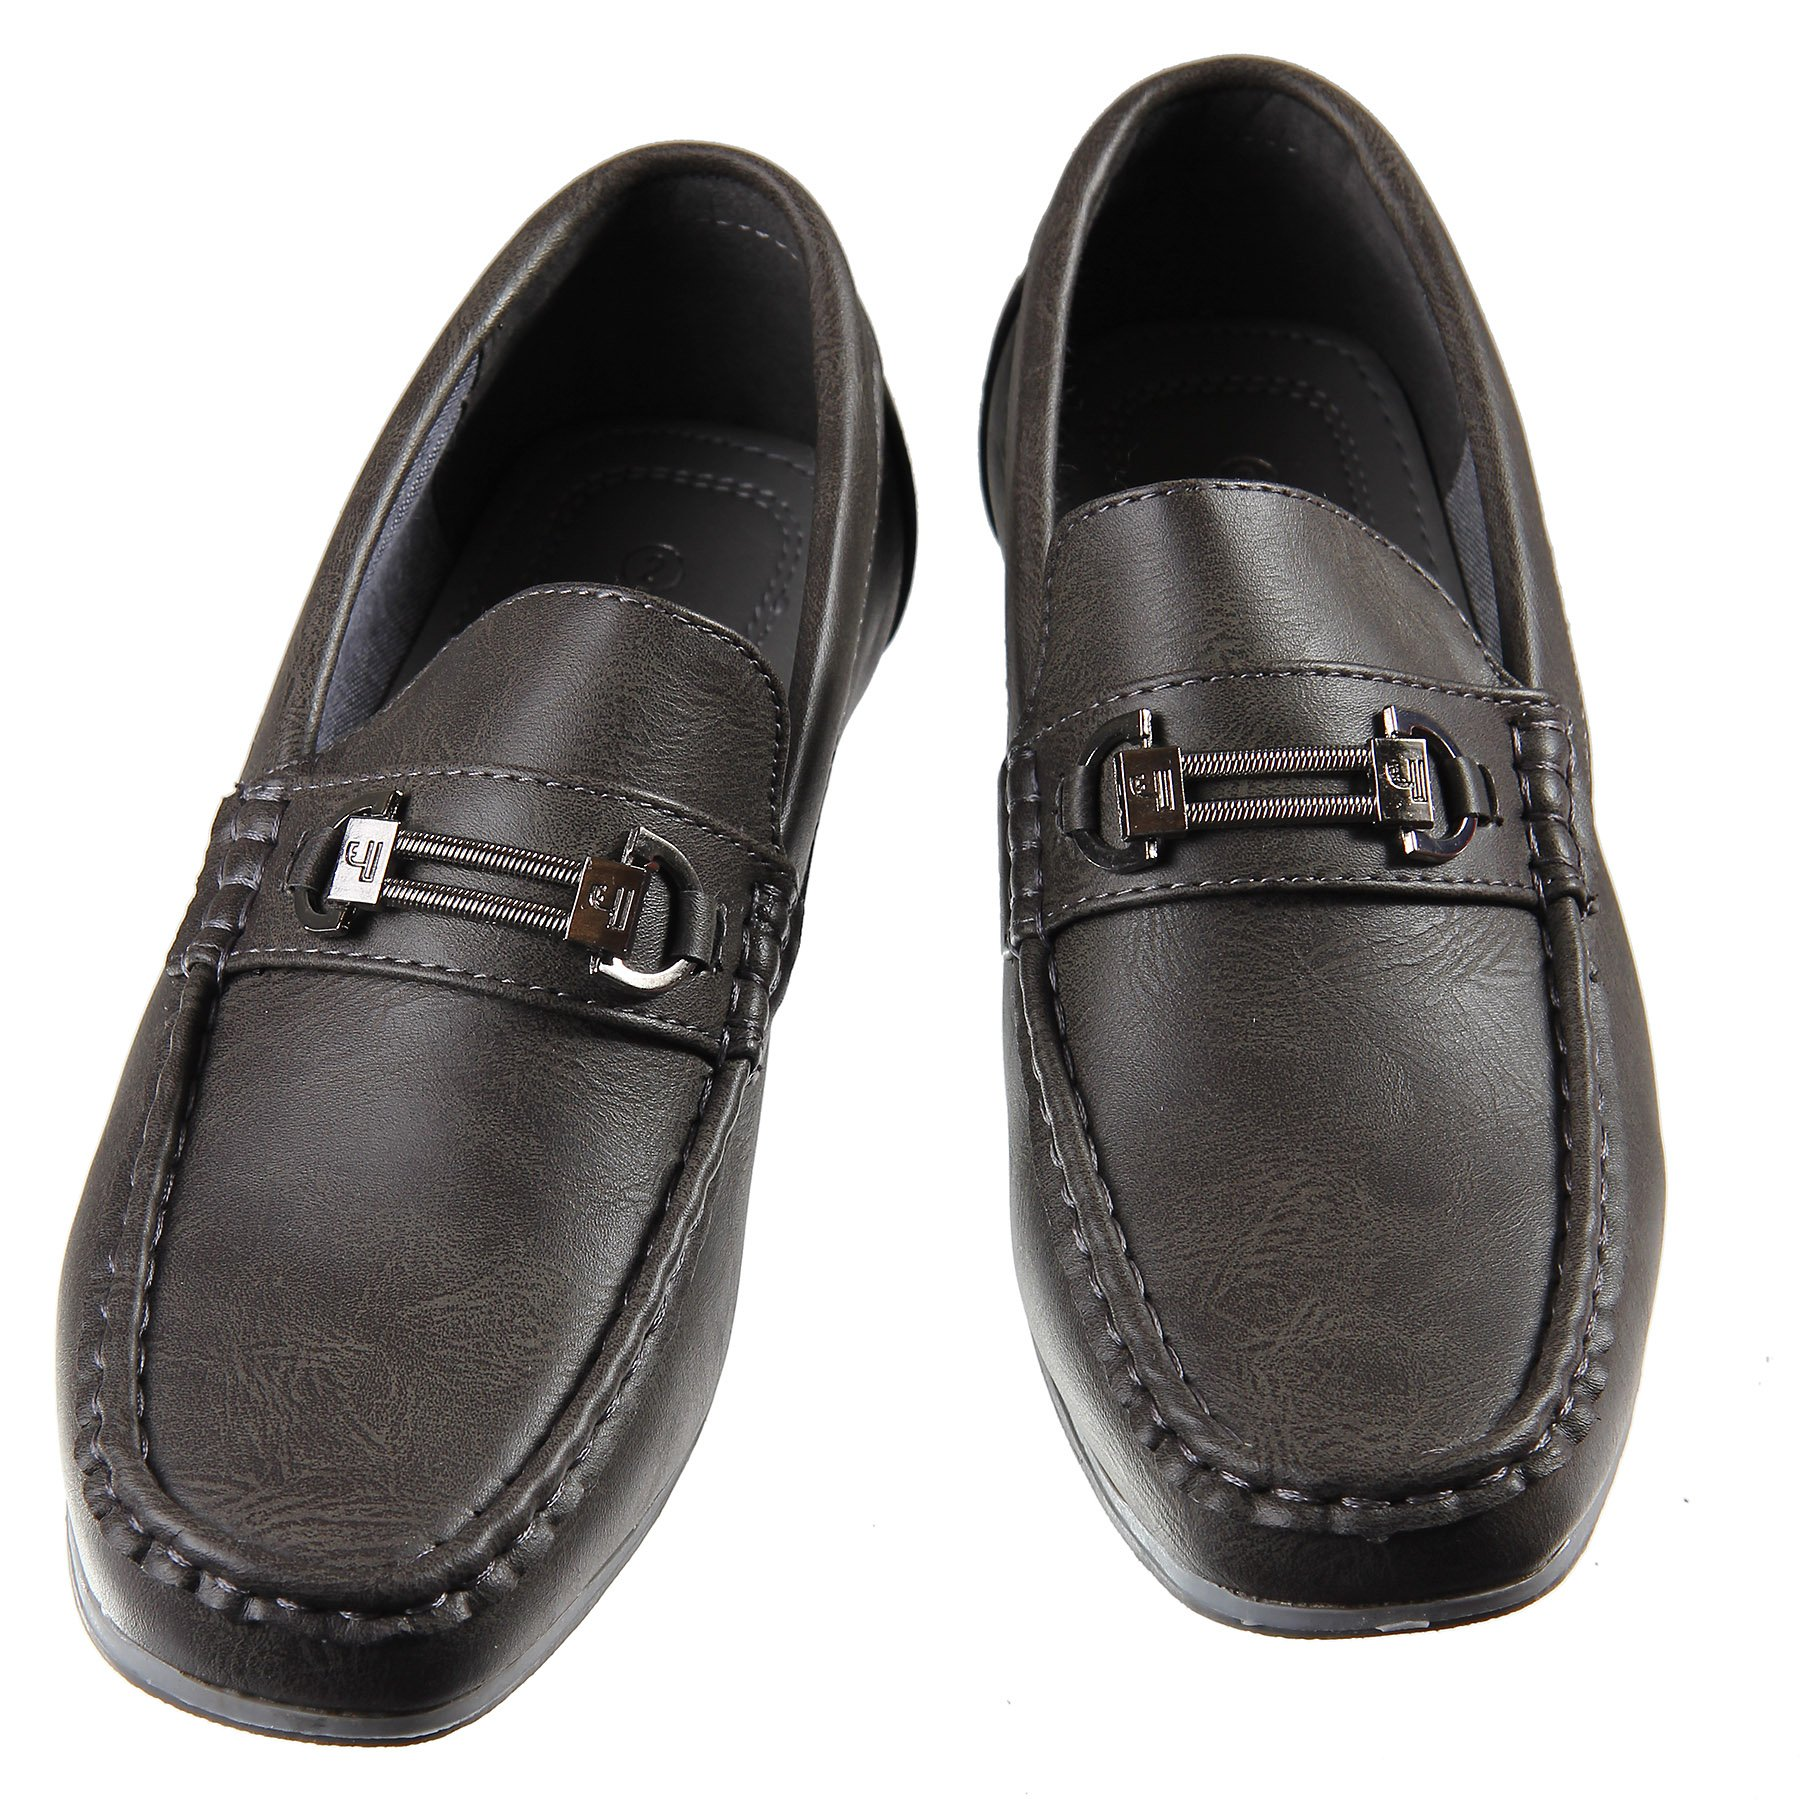 Dark Grey Loafers Slip on Dress Shoes Sized from Little Boys 10 to Big Boys 8 (Little Kid M US 3)